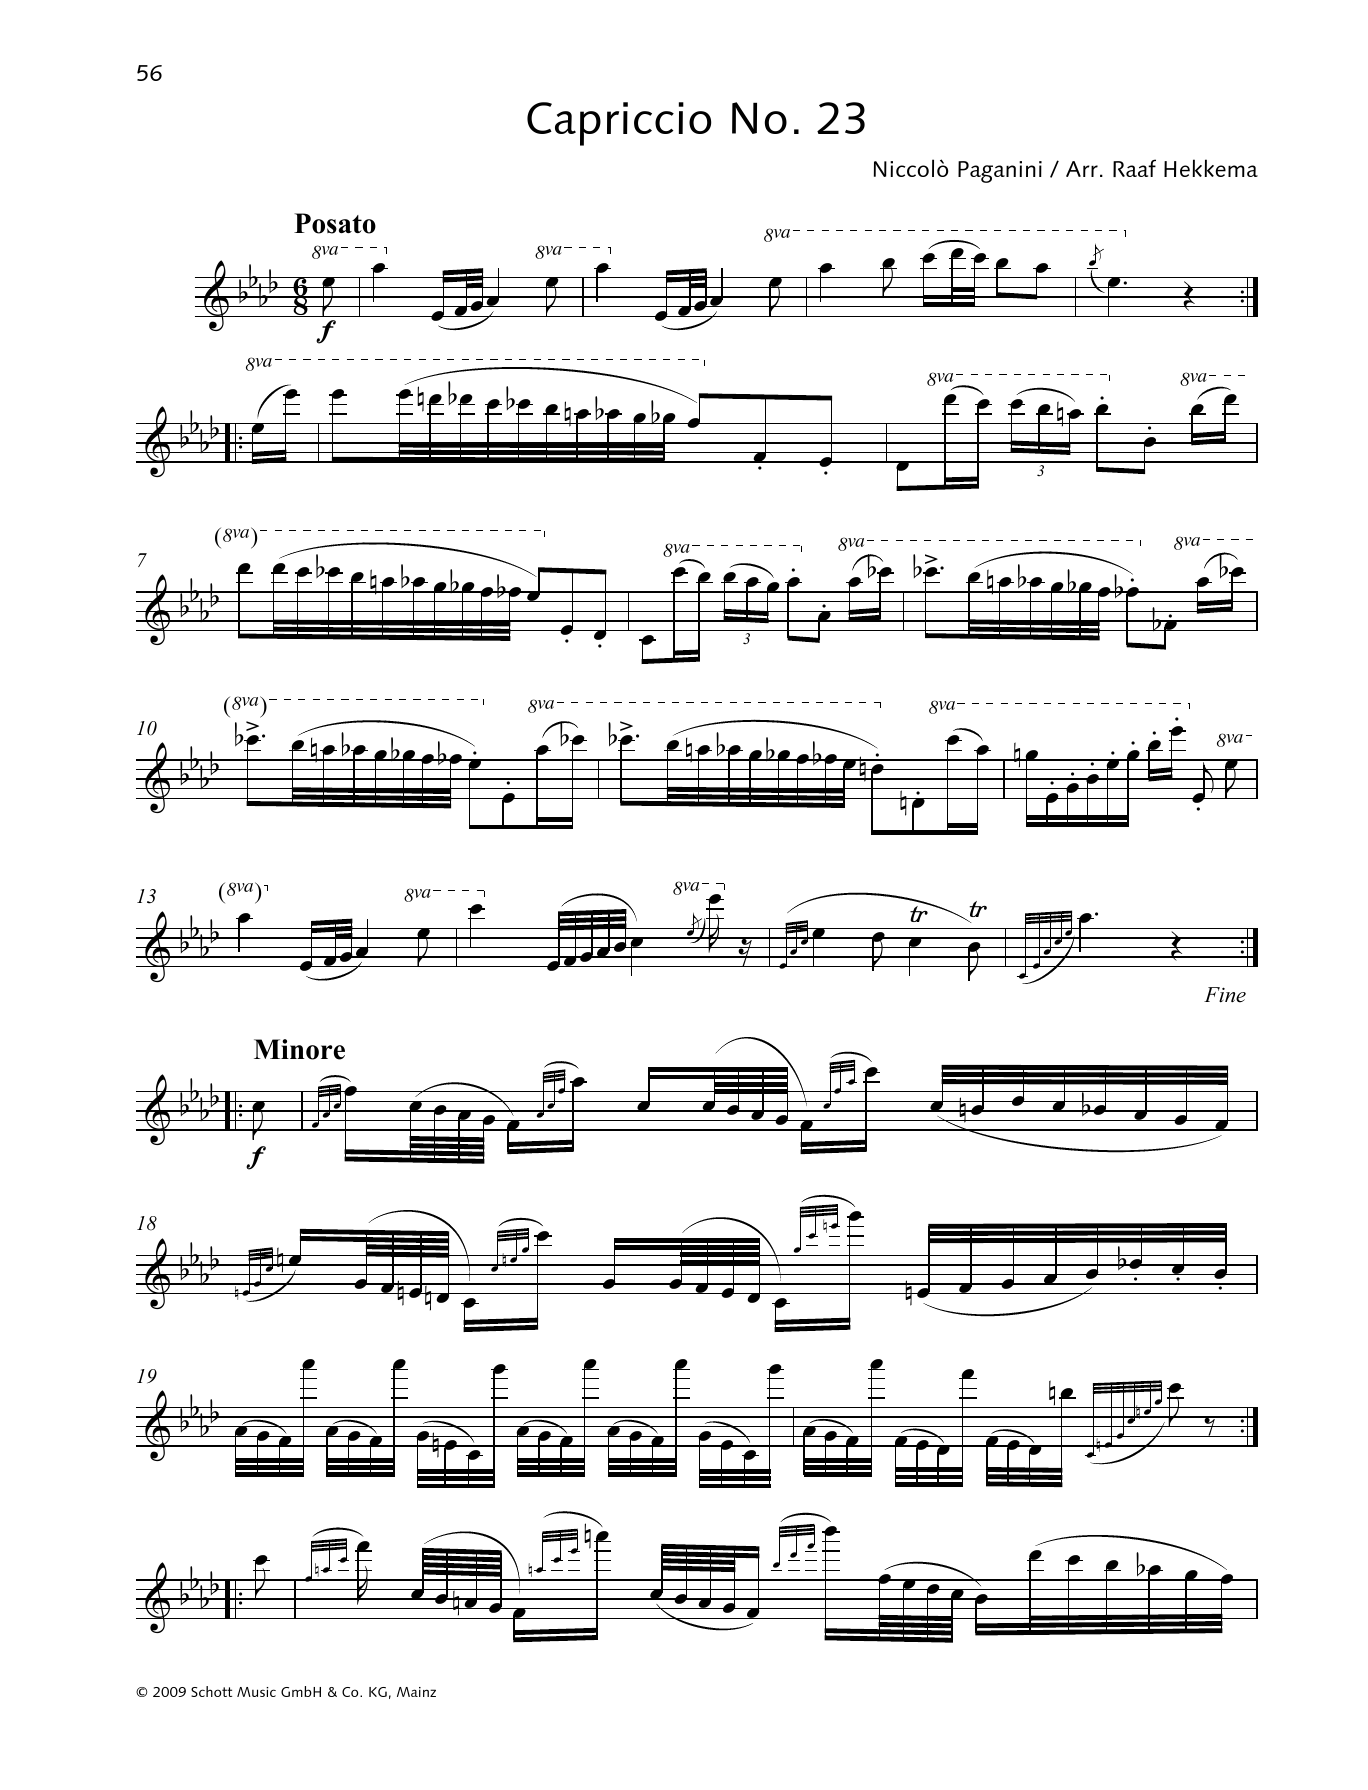 Capriccio No. 23 Sheet Music